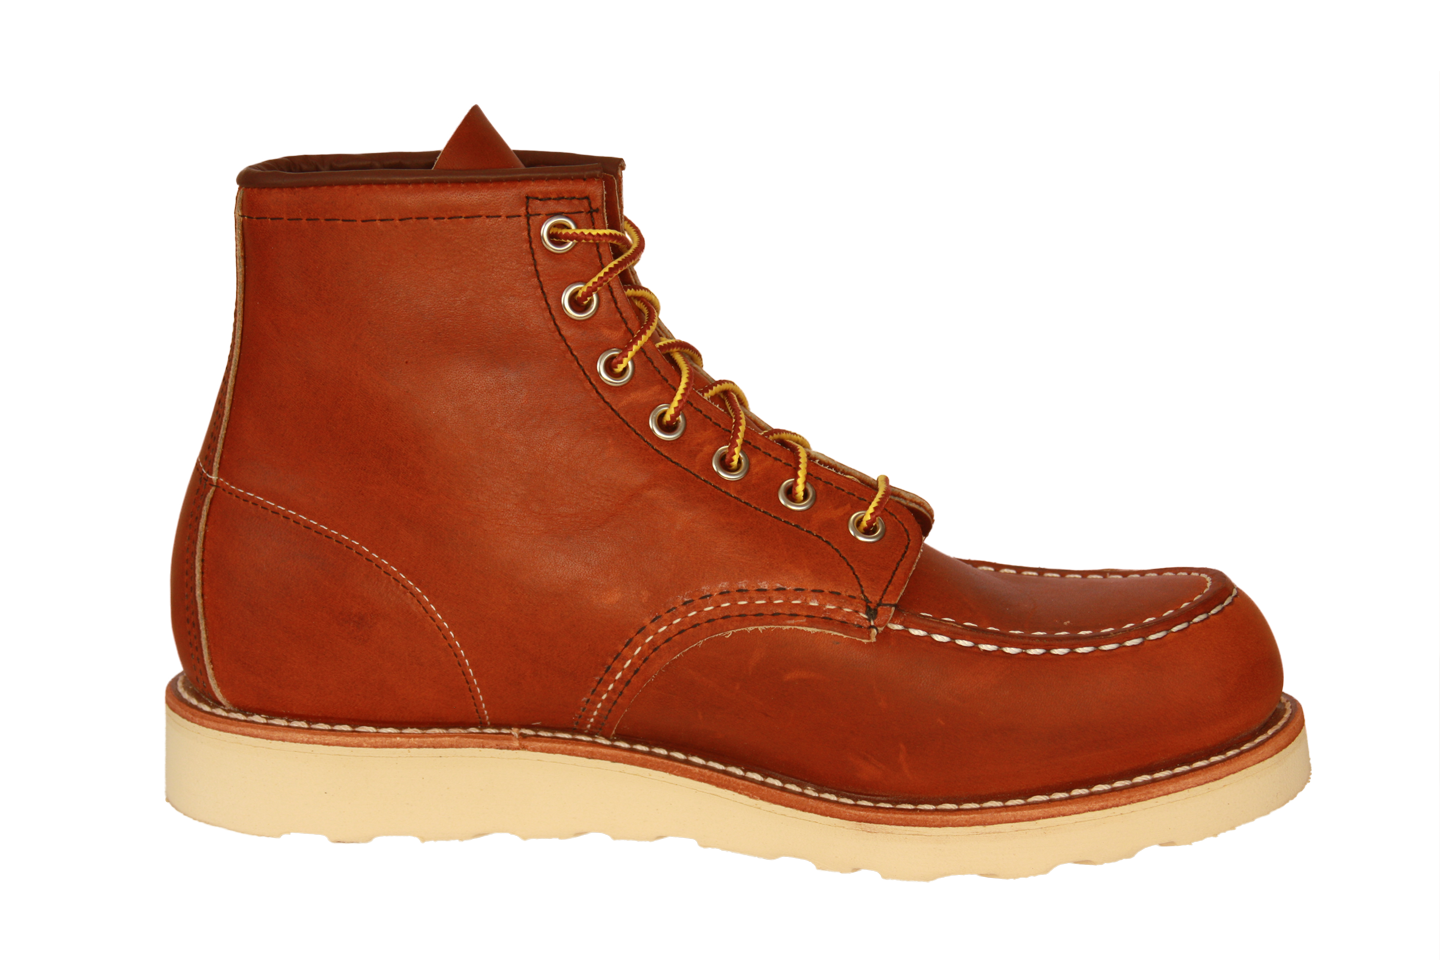 Red Wing Boots For Sale 6aVt0s8K